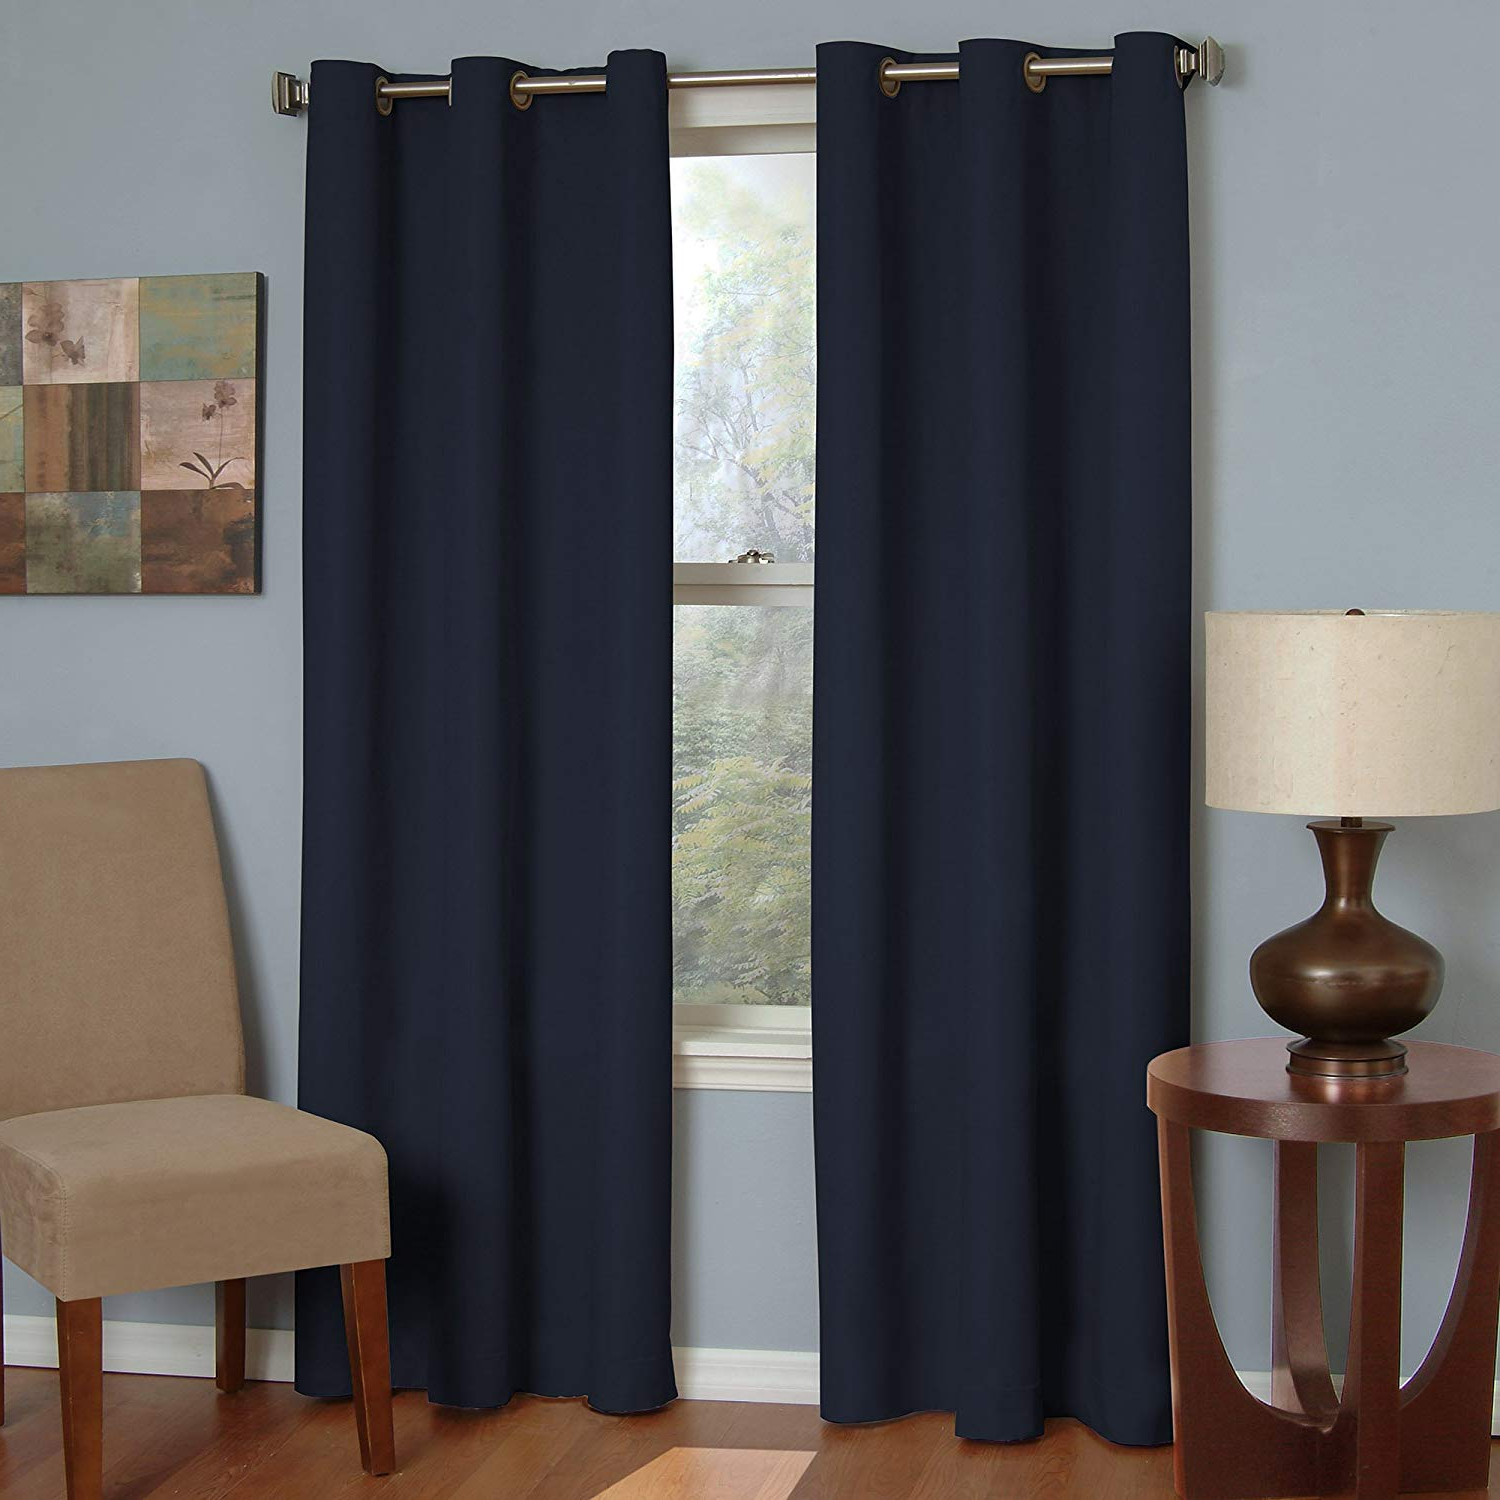 "Eclipse Blackout Curtains For Bedroom – Microfiber 42"" X 63"" Insulated Darkening Single Panel Grommet Top Window Treatment Living Room, Navy For Newest Eclipse Corinne Thermaback Curtain Panels (View 20 of 20)"